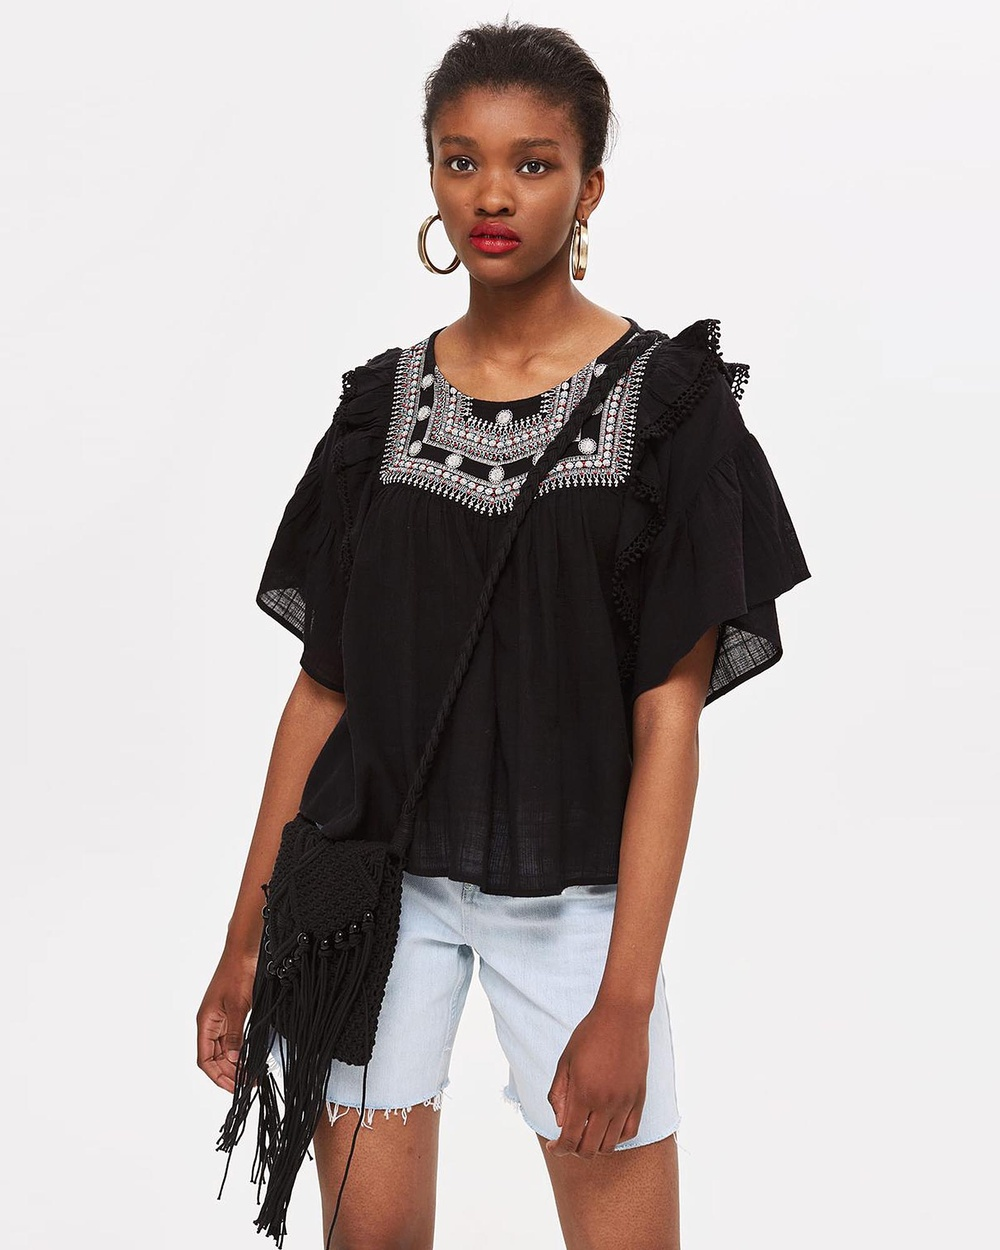 TOPSHOP Yoke Smock Top Tops Black Yoke Smock Top